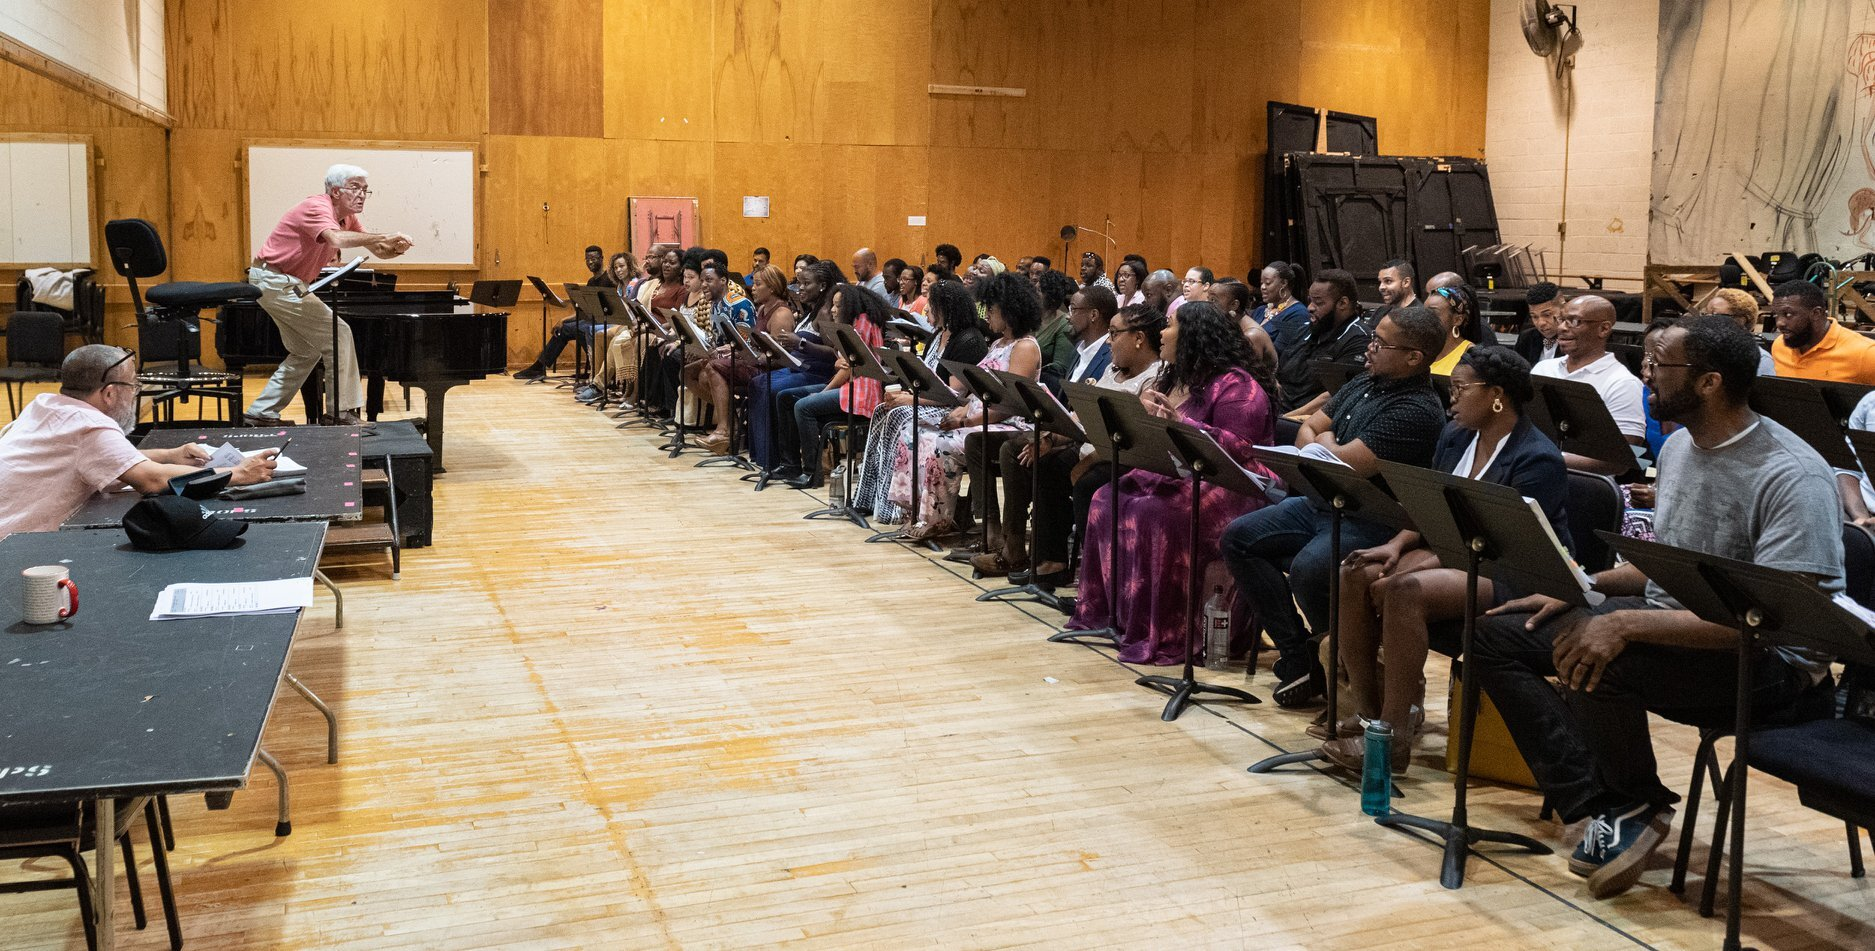 A Porgy & Bess room rehearsal with chorusmasters Donald Palumbo (at the podium) and Daniel Moody. (Photo: Jonathan Tichler)